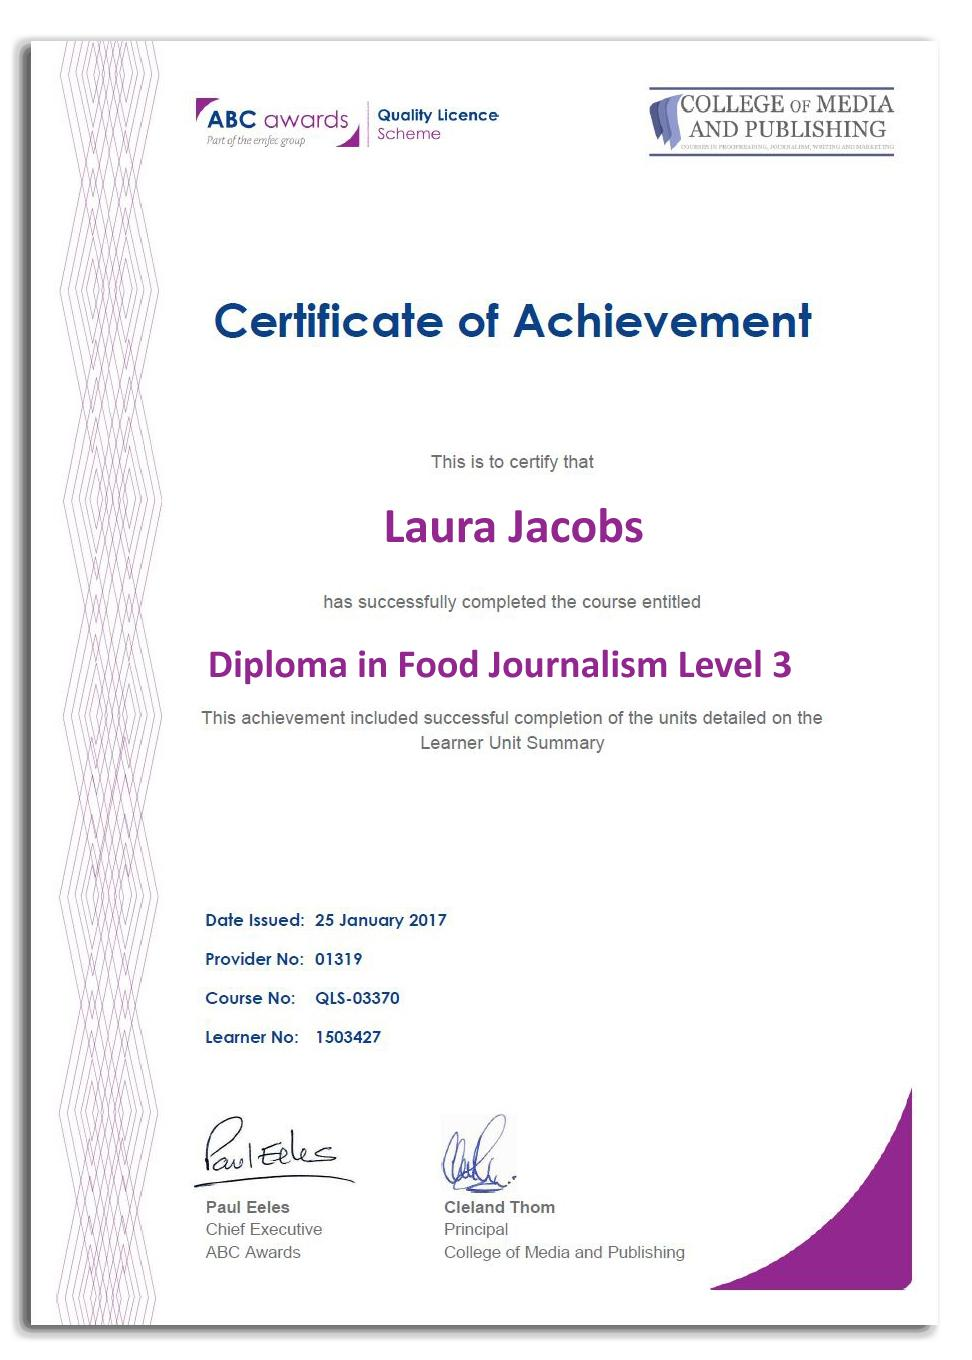 Food journalism course certificate